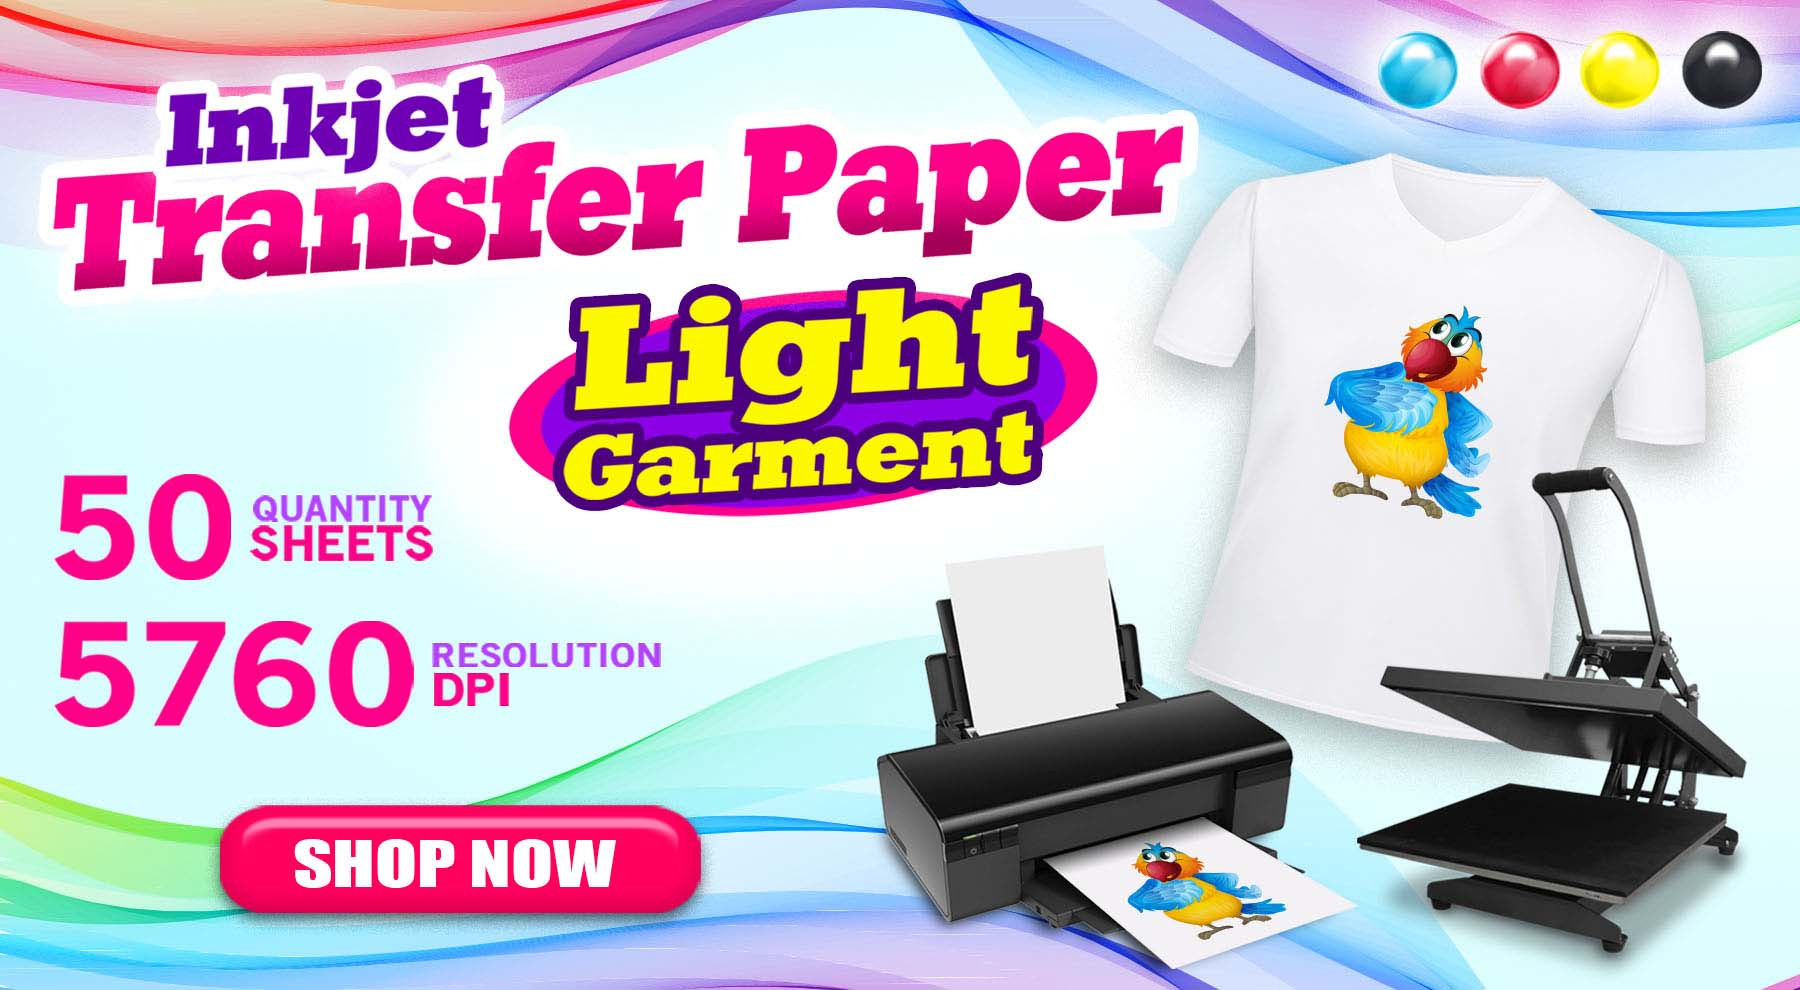 Inkjet Transfer Paper Light